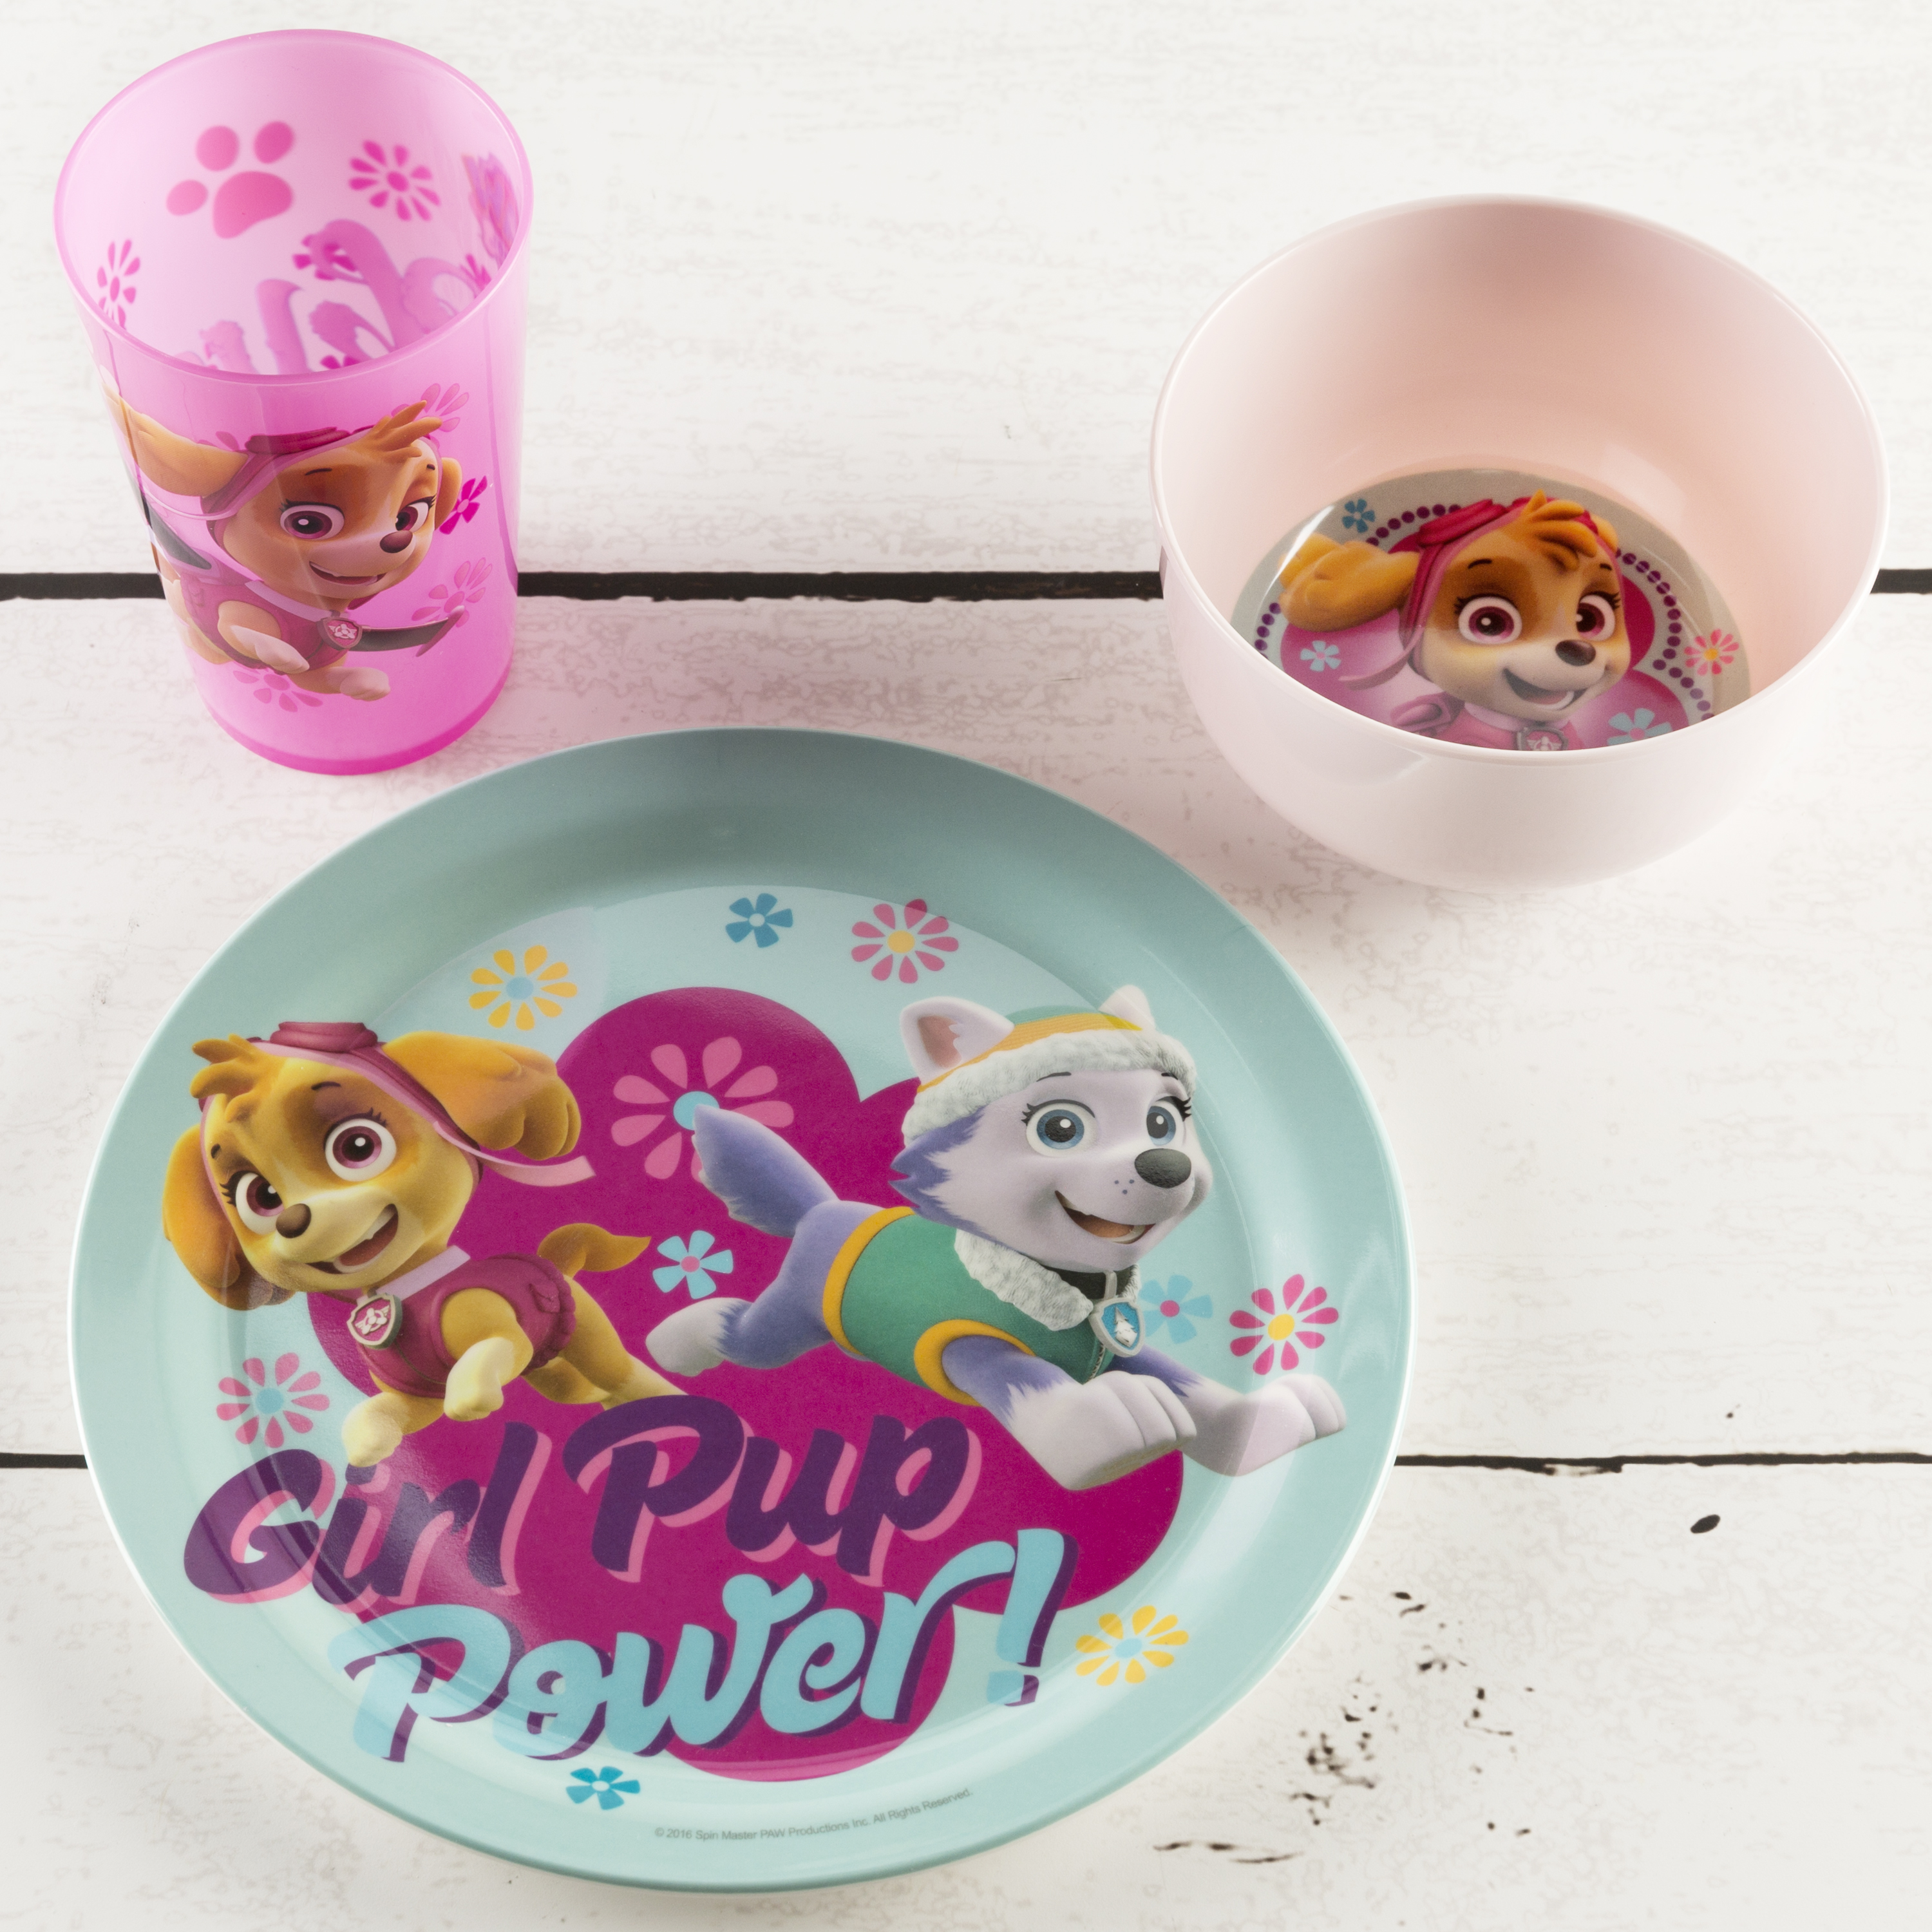 Paw Patrol Dinnerware Set, Skye & Everest, 5-piece set slideshow image 4